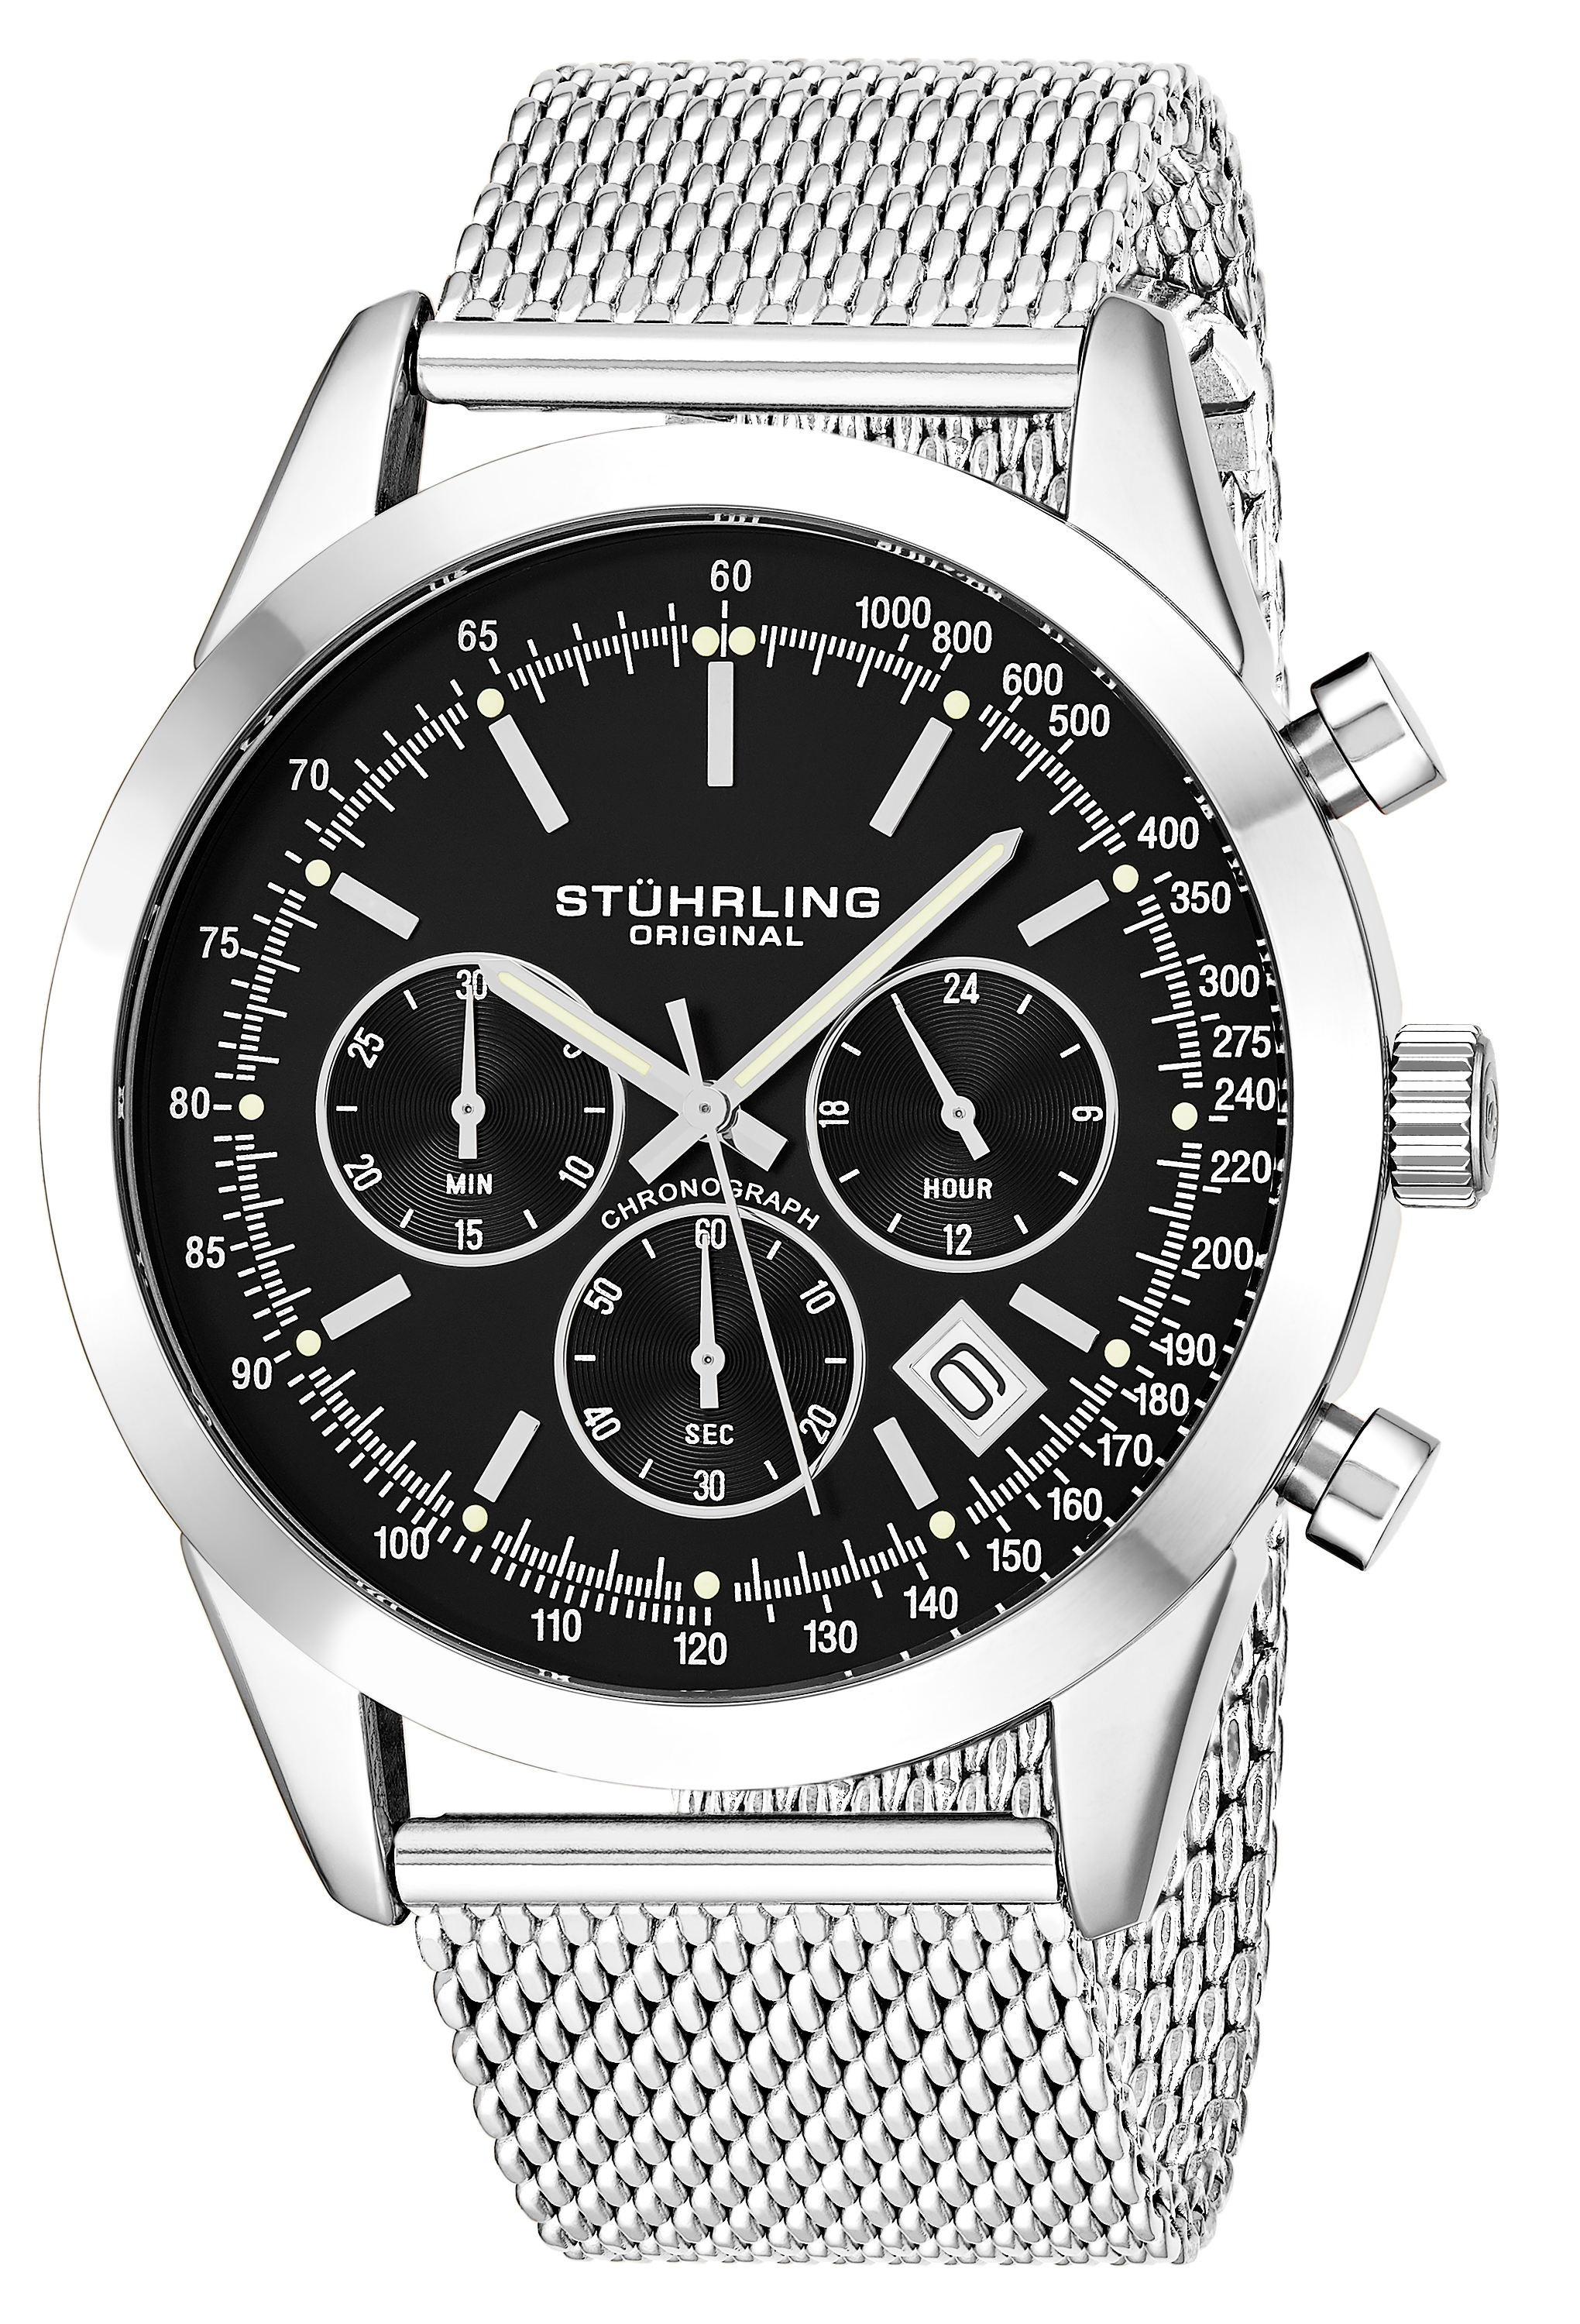 Stührling Original 99999 Herrklocka 3975.1 Svart/Stål Ø42 mm - Stührling Original